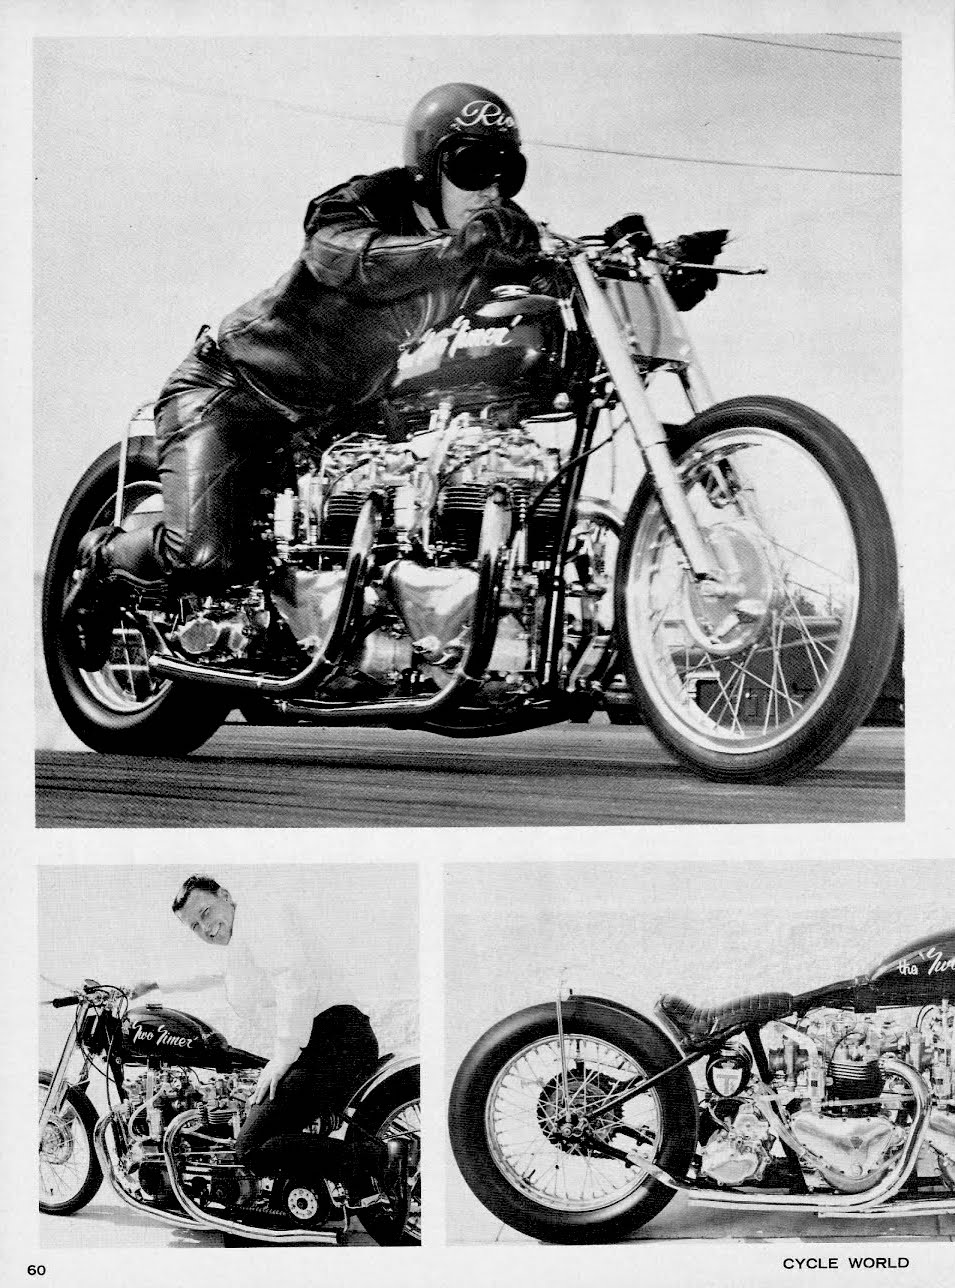 1964azzz1965 dick rios two timer triumph motorcycle drag bike